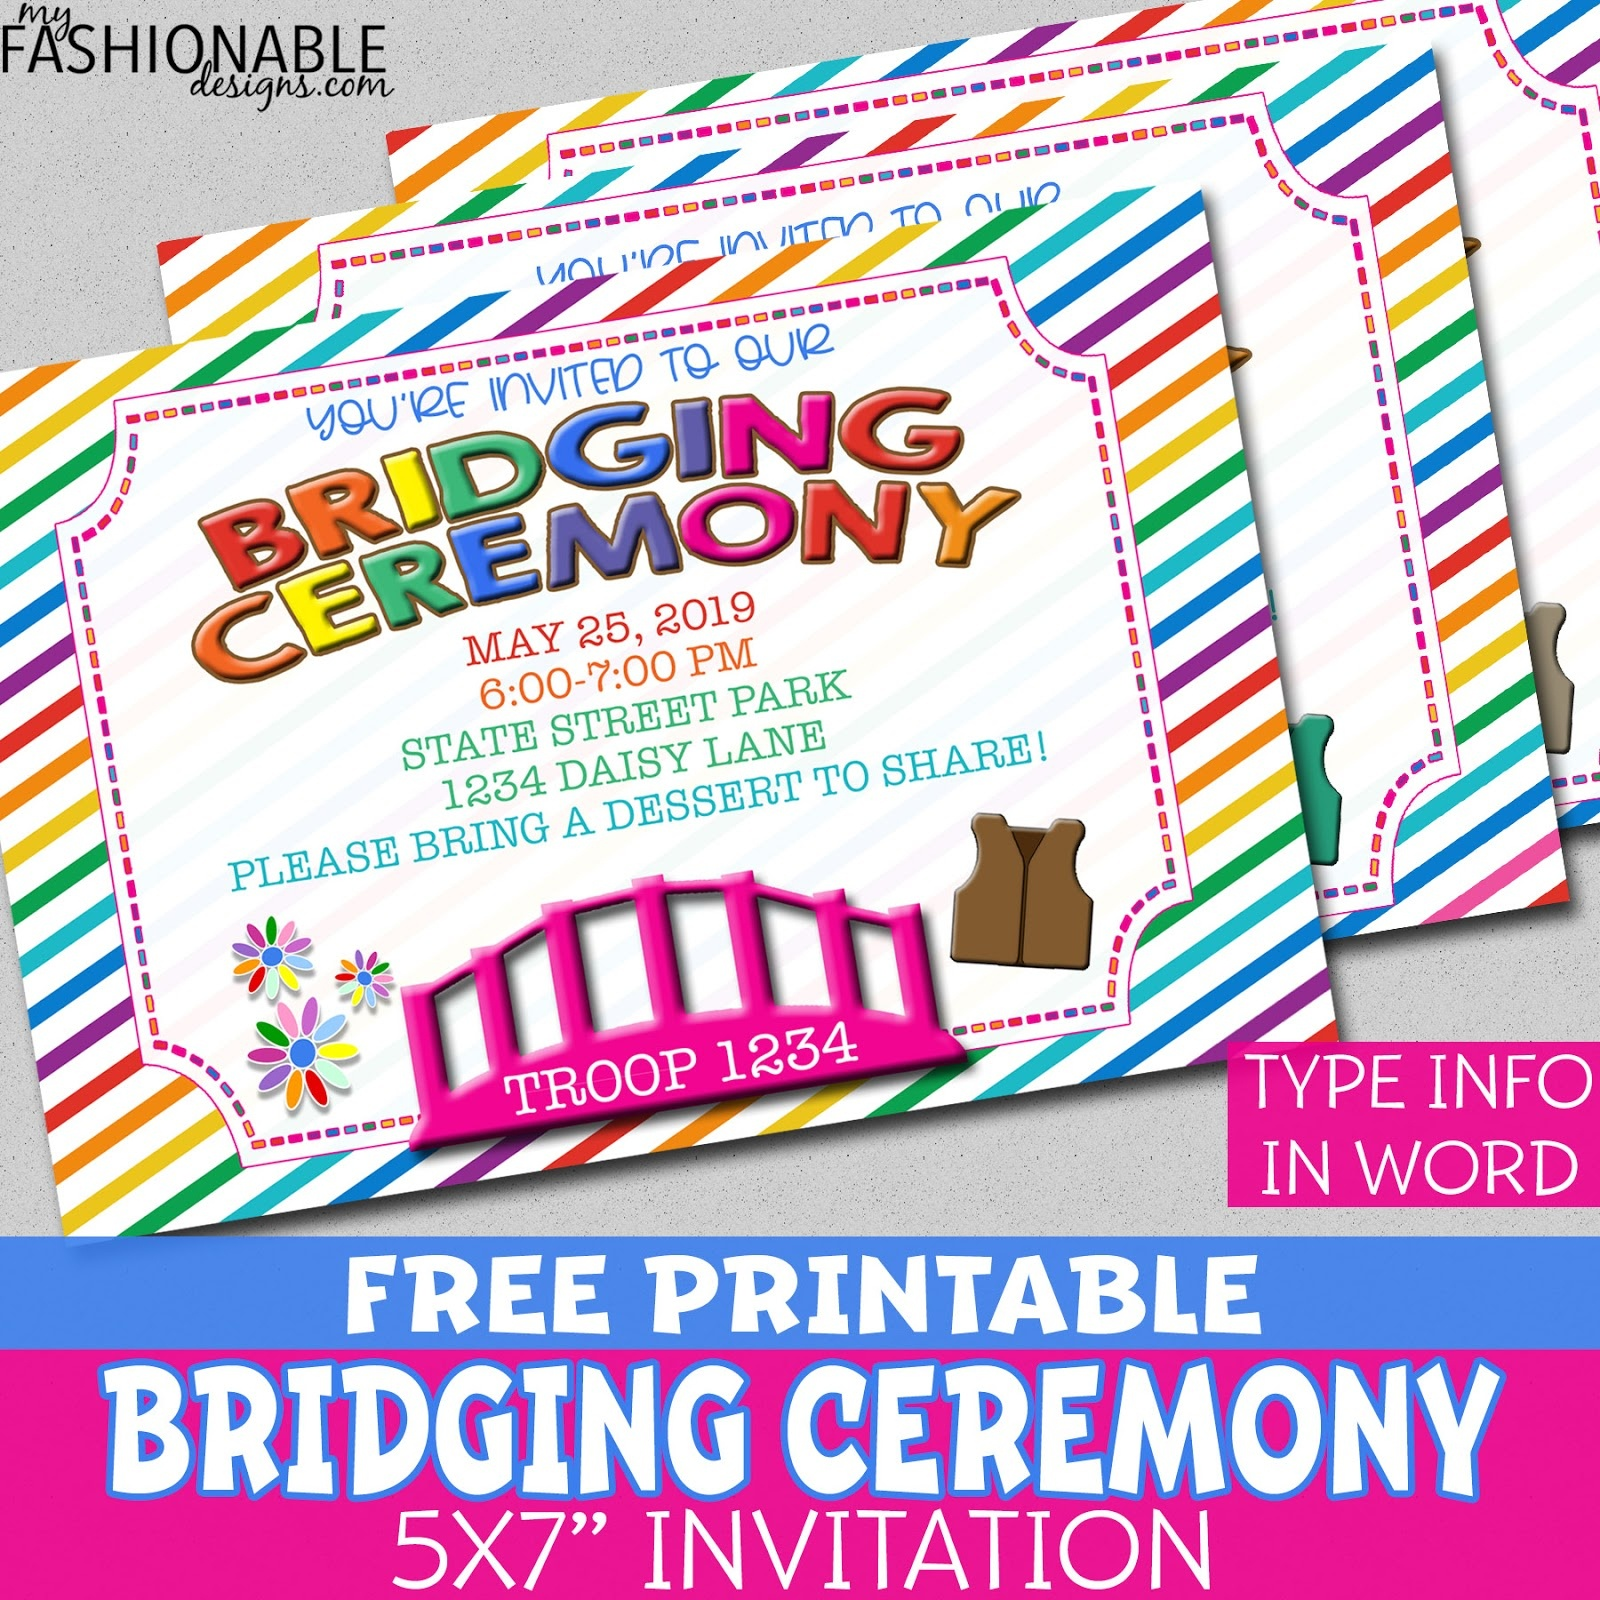 My Fashionable Designs: Free Printable Bridging Invitations - Free Bridging Certificate Printable